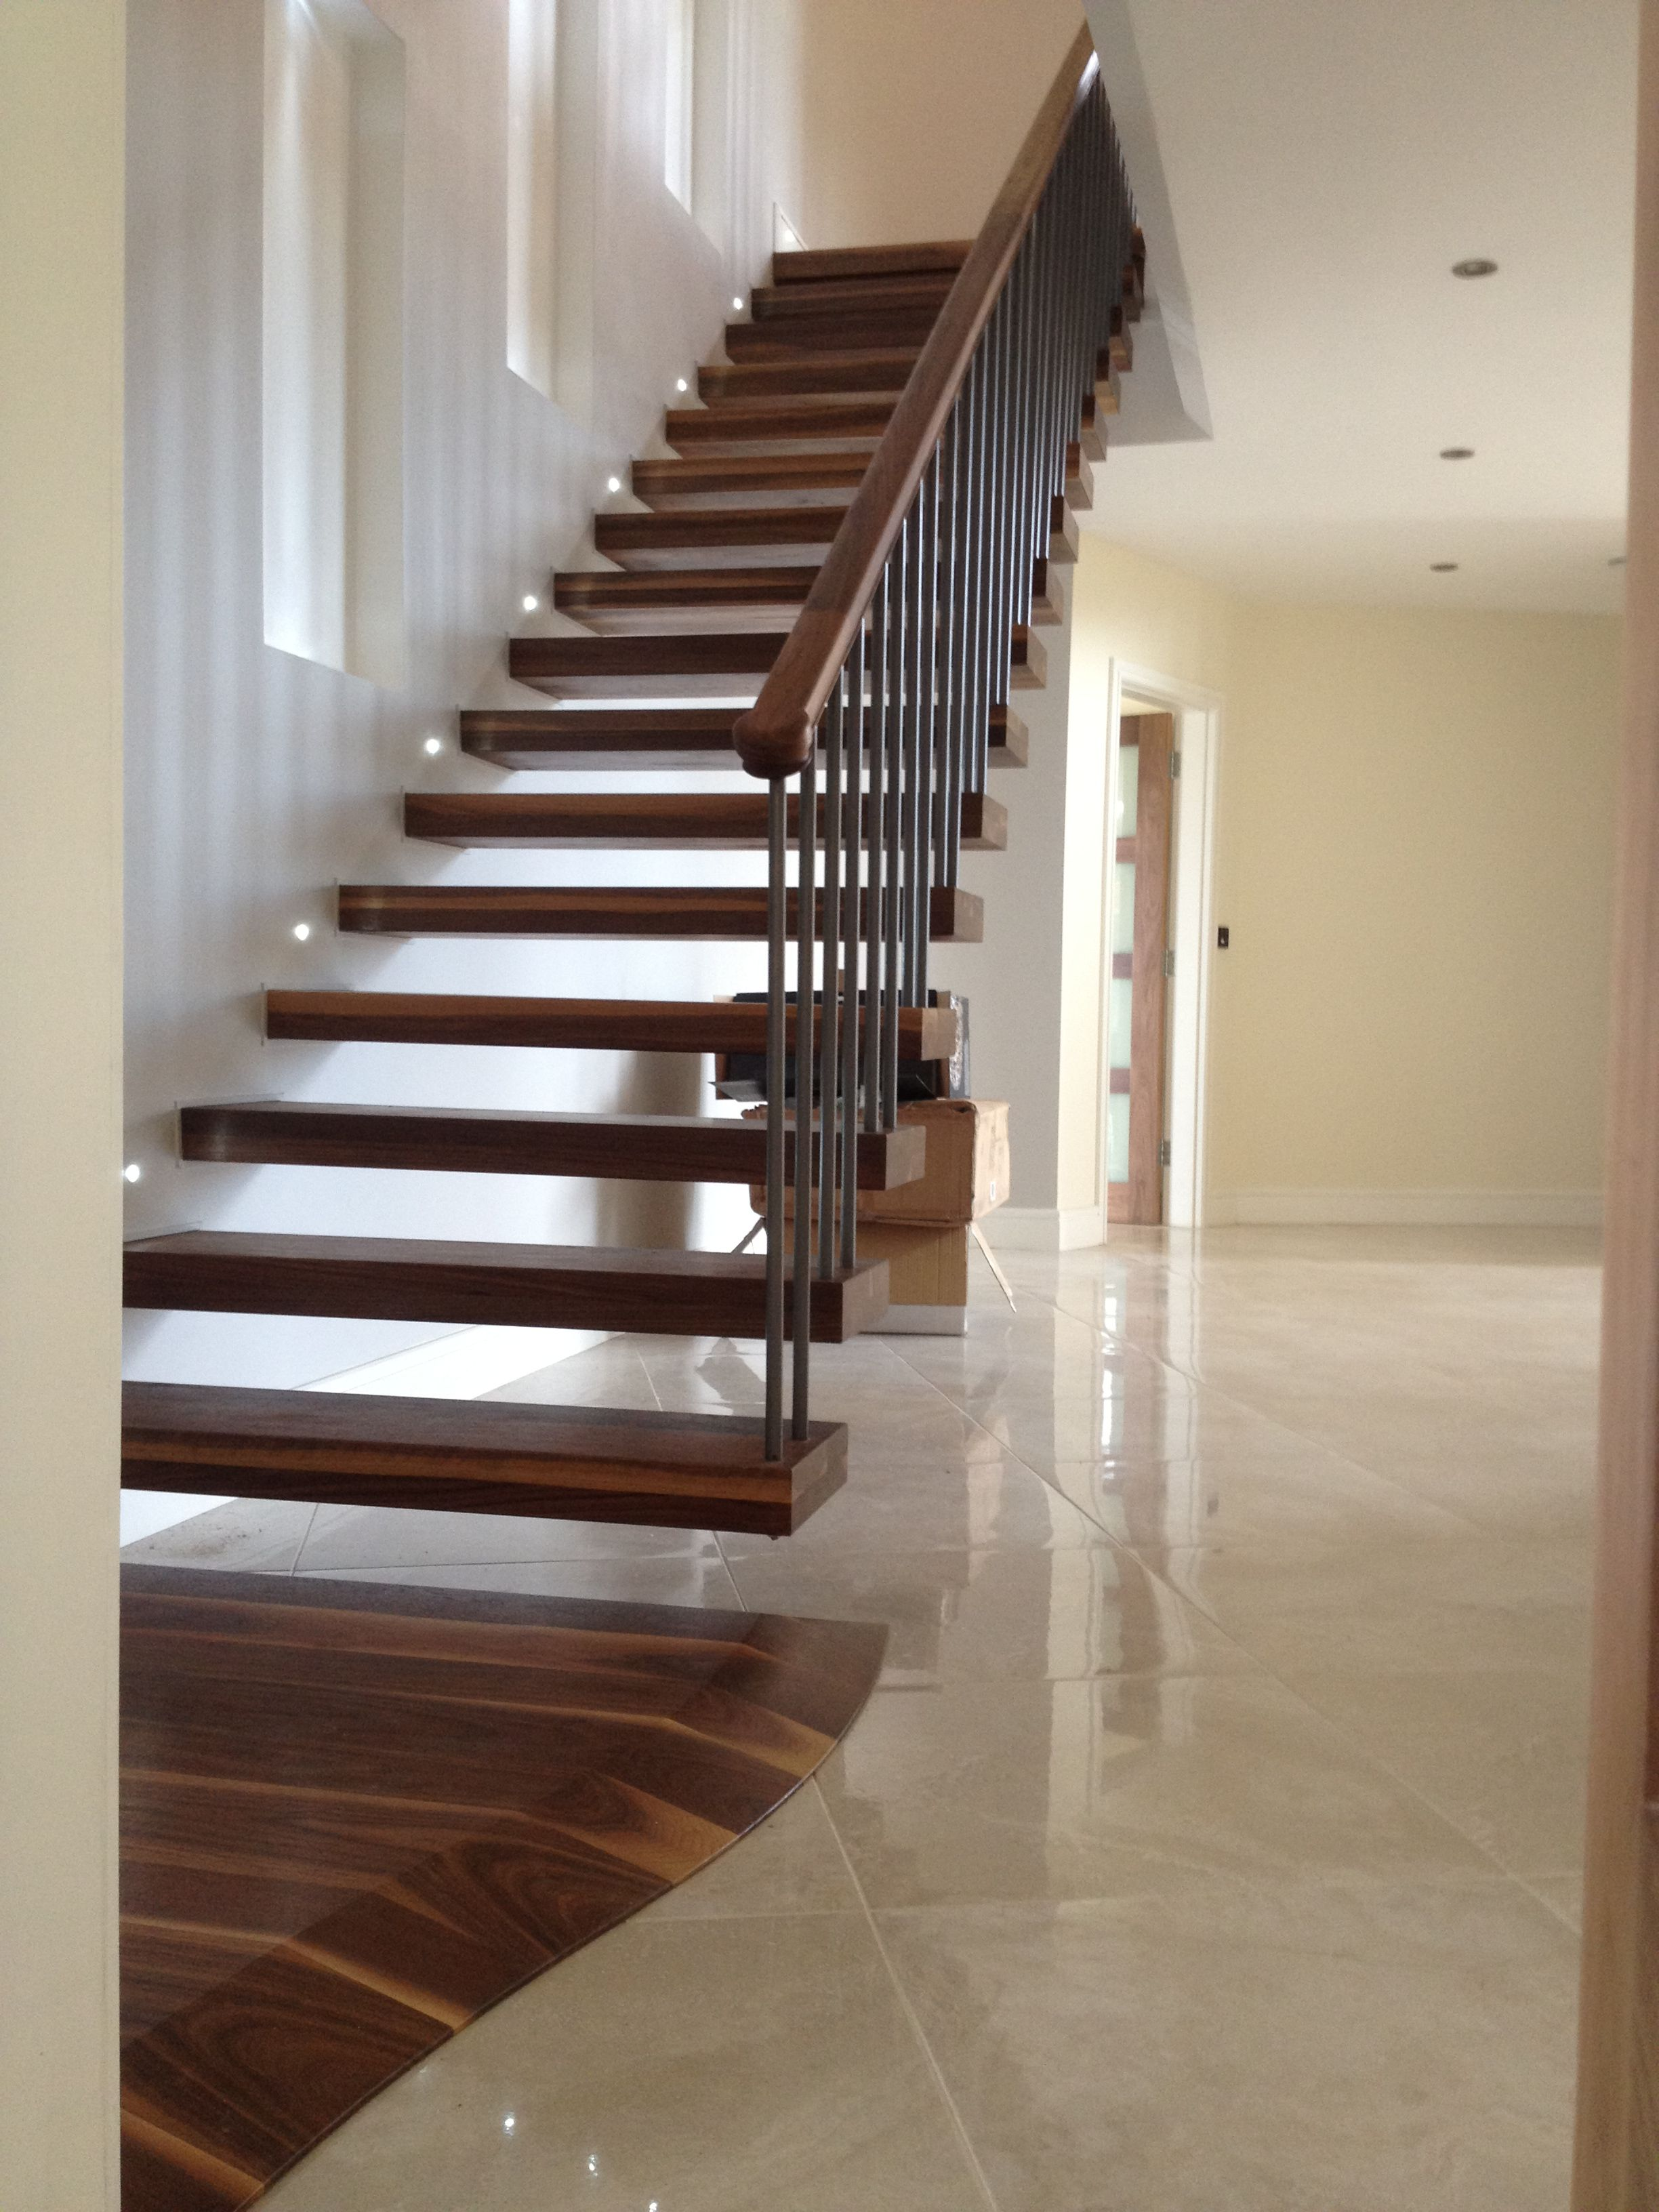 30 Exquisite Floating Stairs Design And Pictures Collection: Mesmerizing  Dark Brown Wooden Floating Stairs With Woods Handle Rails As Decorate In ...